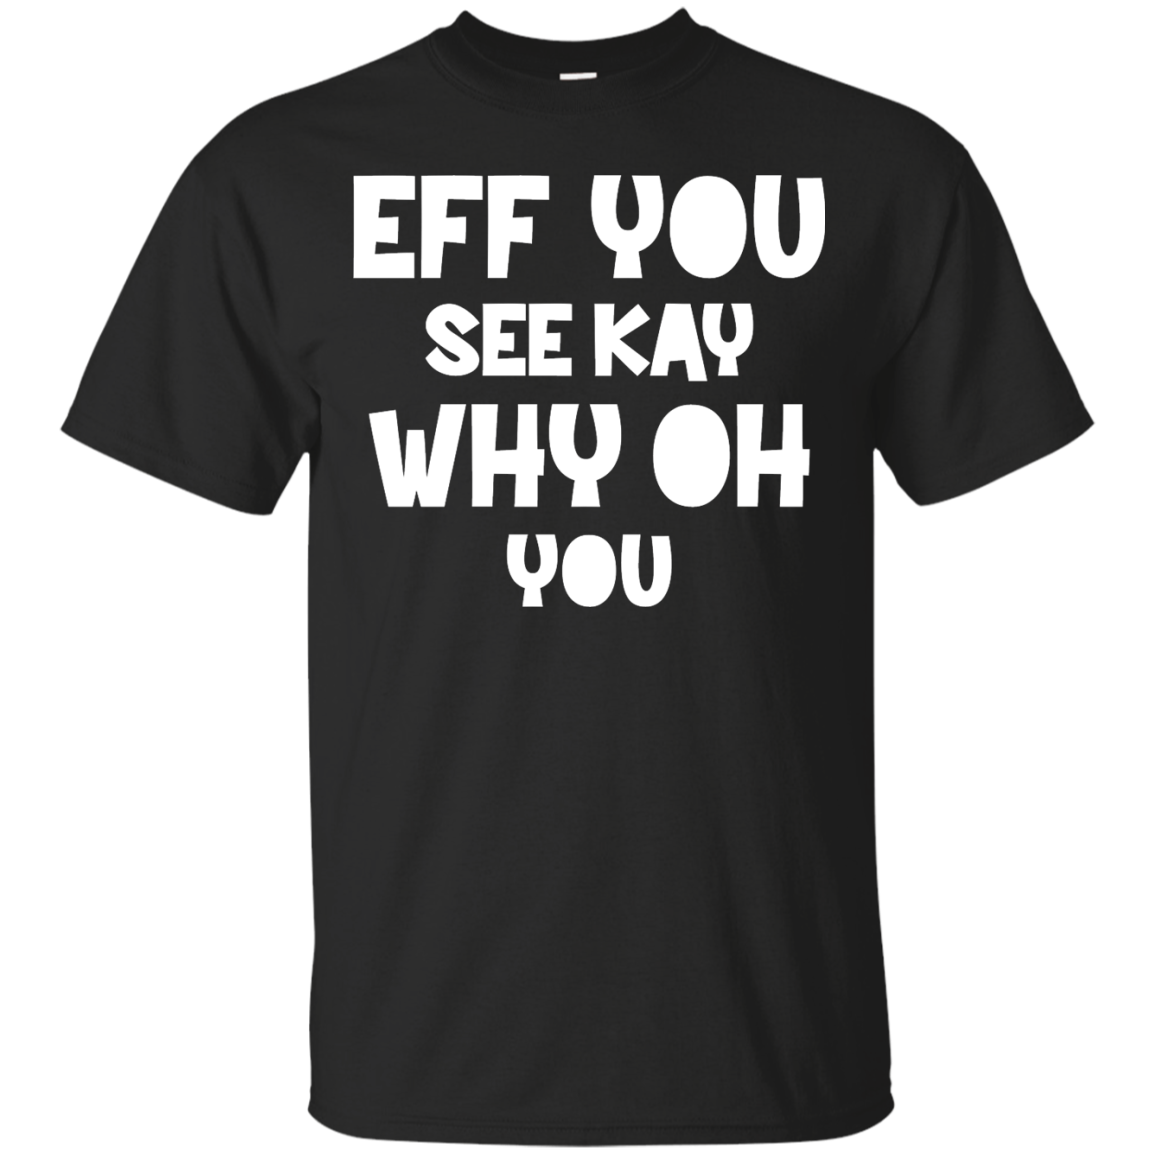 Eff you see kay why oh you T-shirt,Tank top & Hoodies